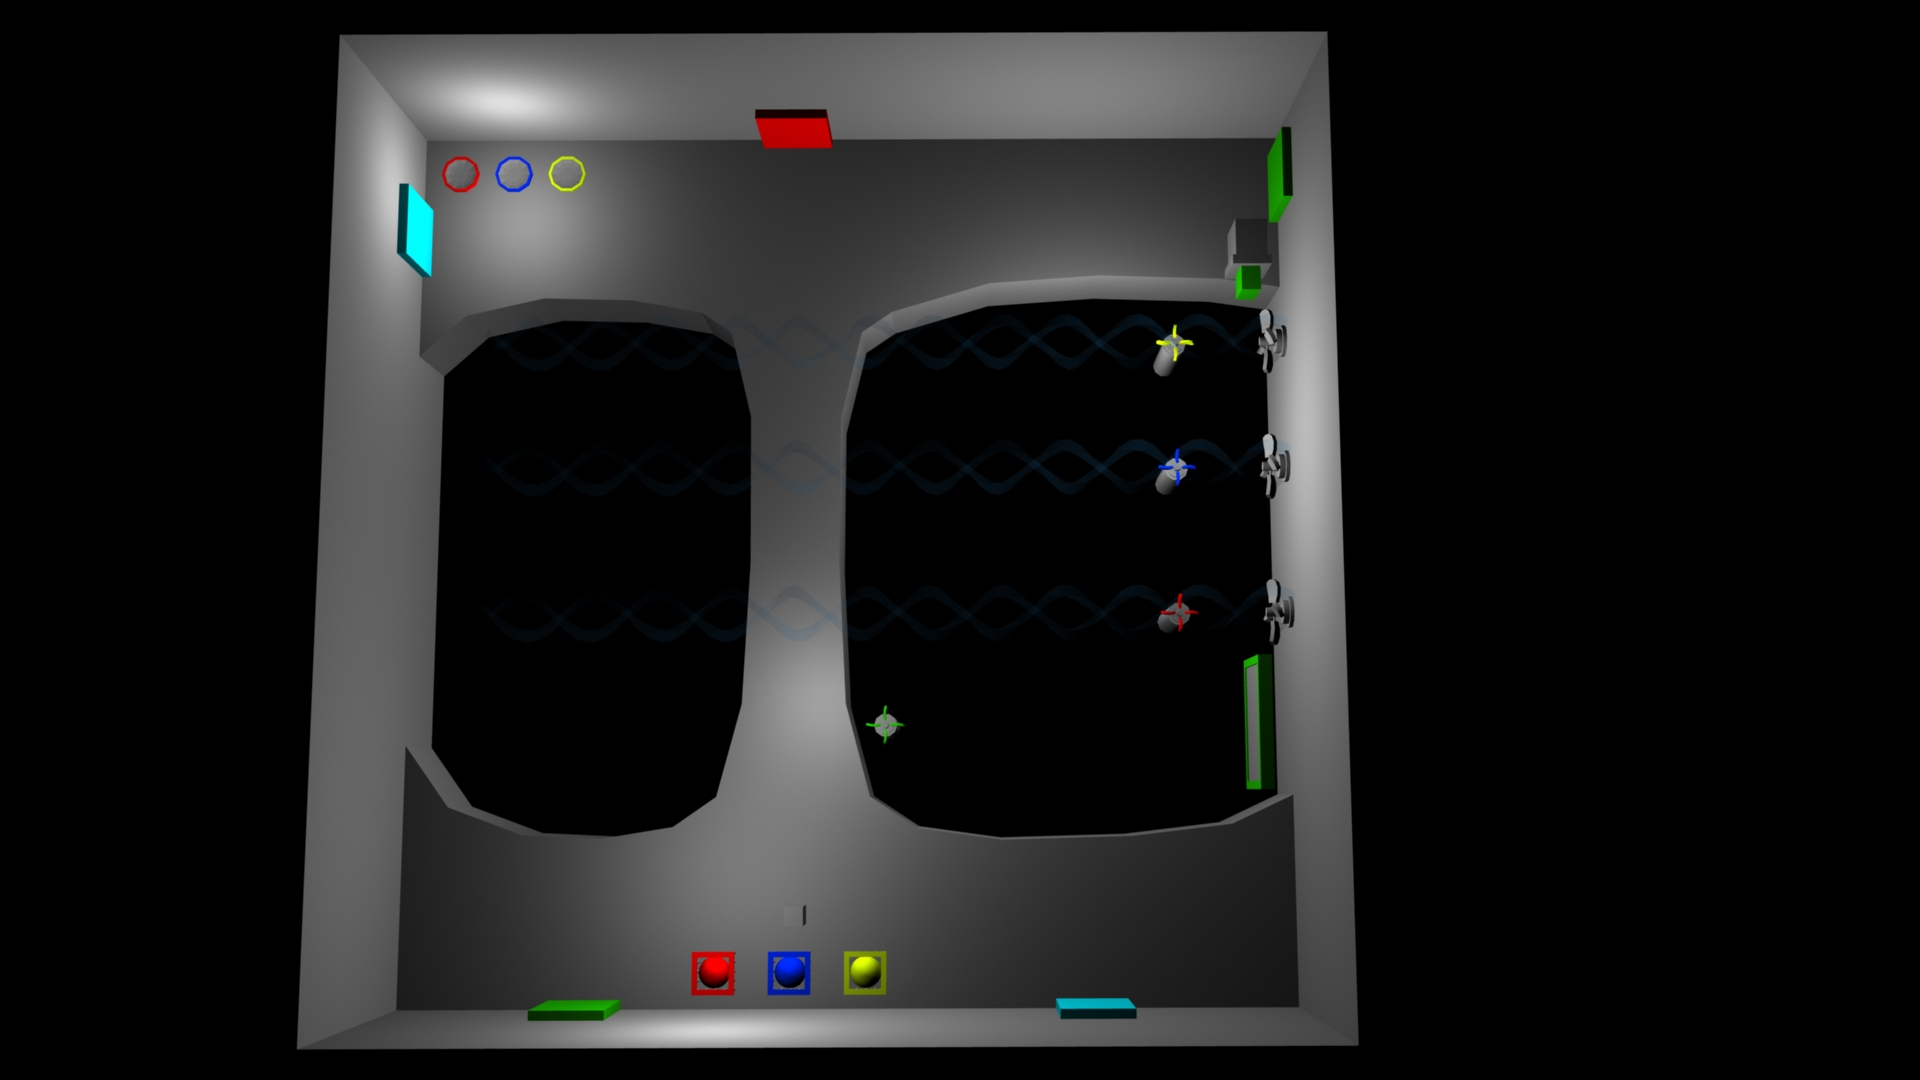 Next I went into a blockout prototype to get the feel of the size and shape of the room as well as demonstrate the mechanics of the puzzles in the room.